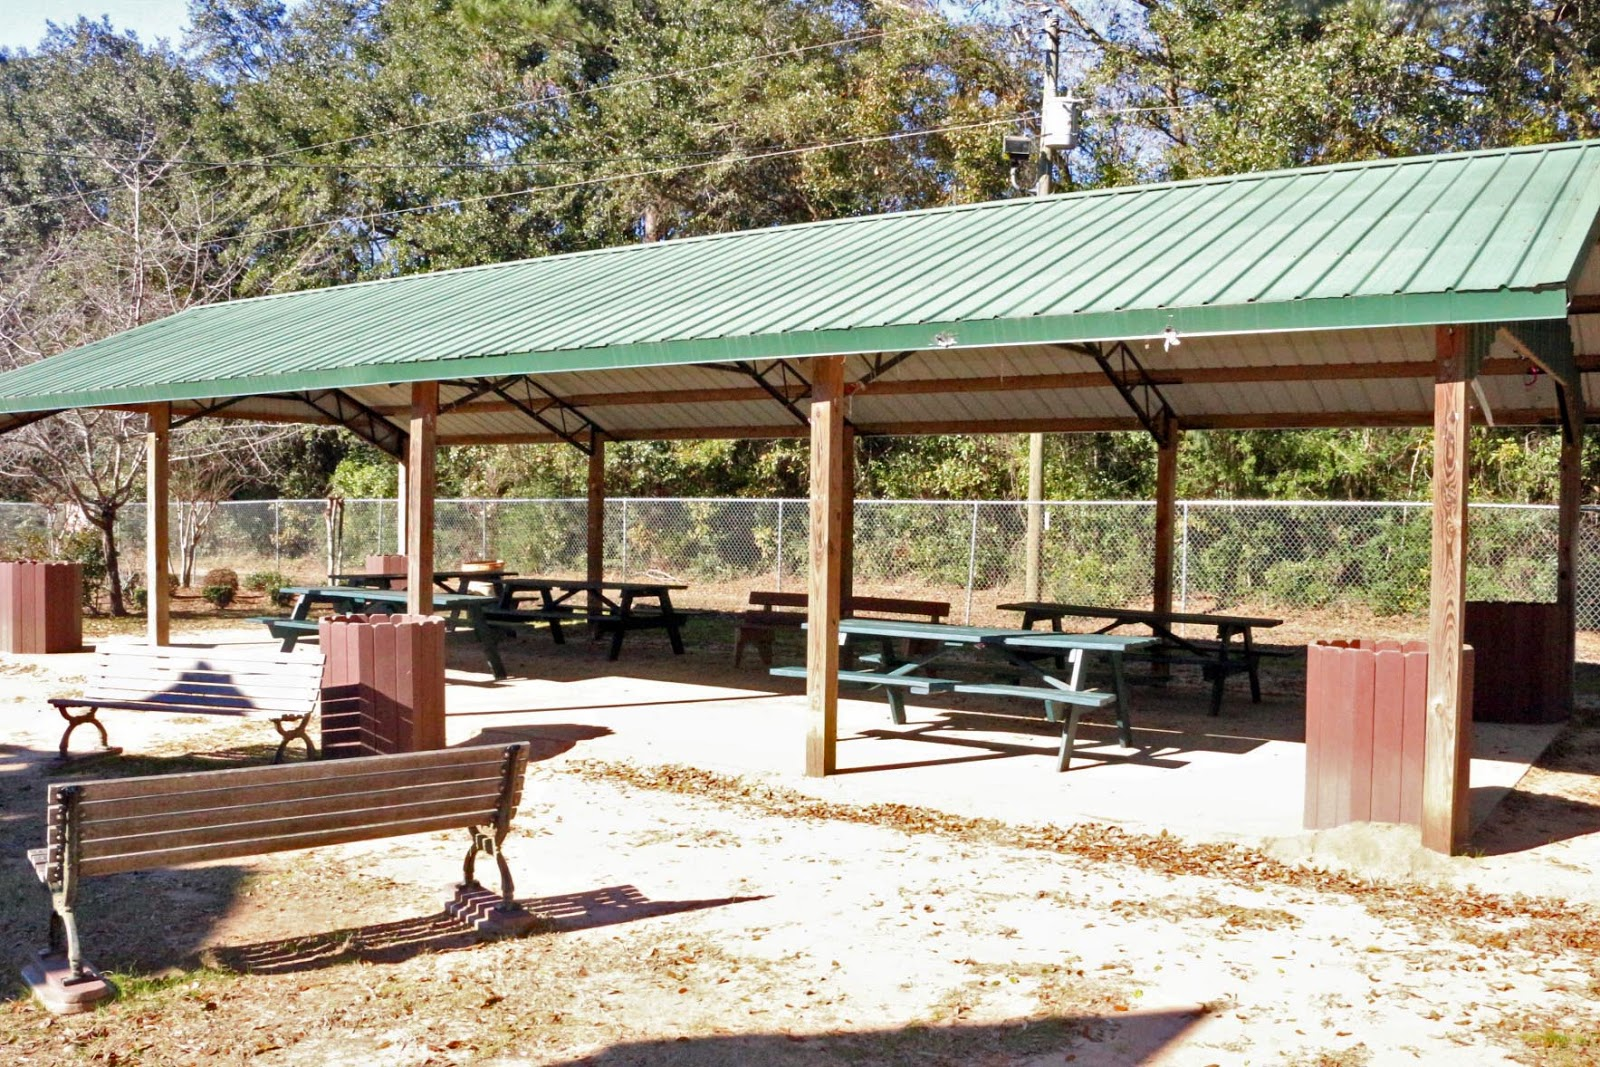 Picnic area at Benny Russell Park in Pace, FL 32571